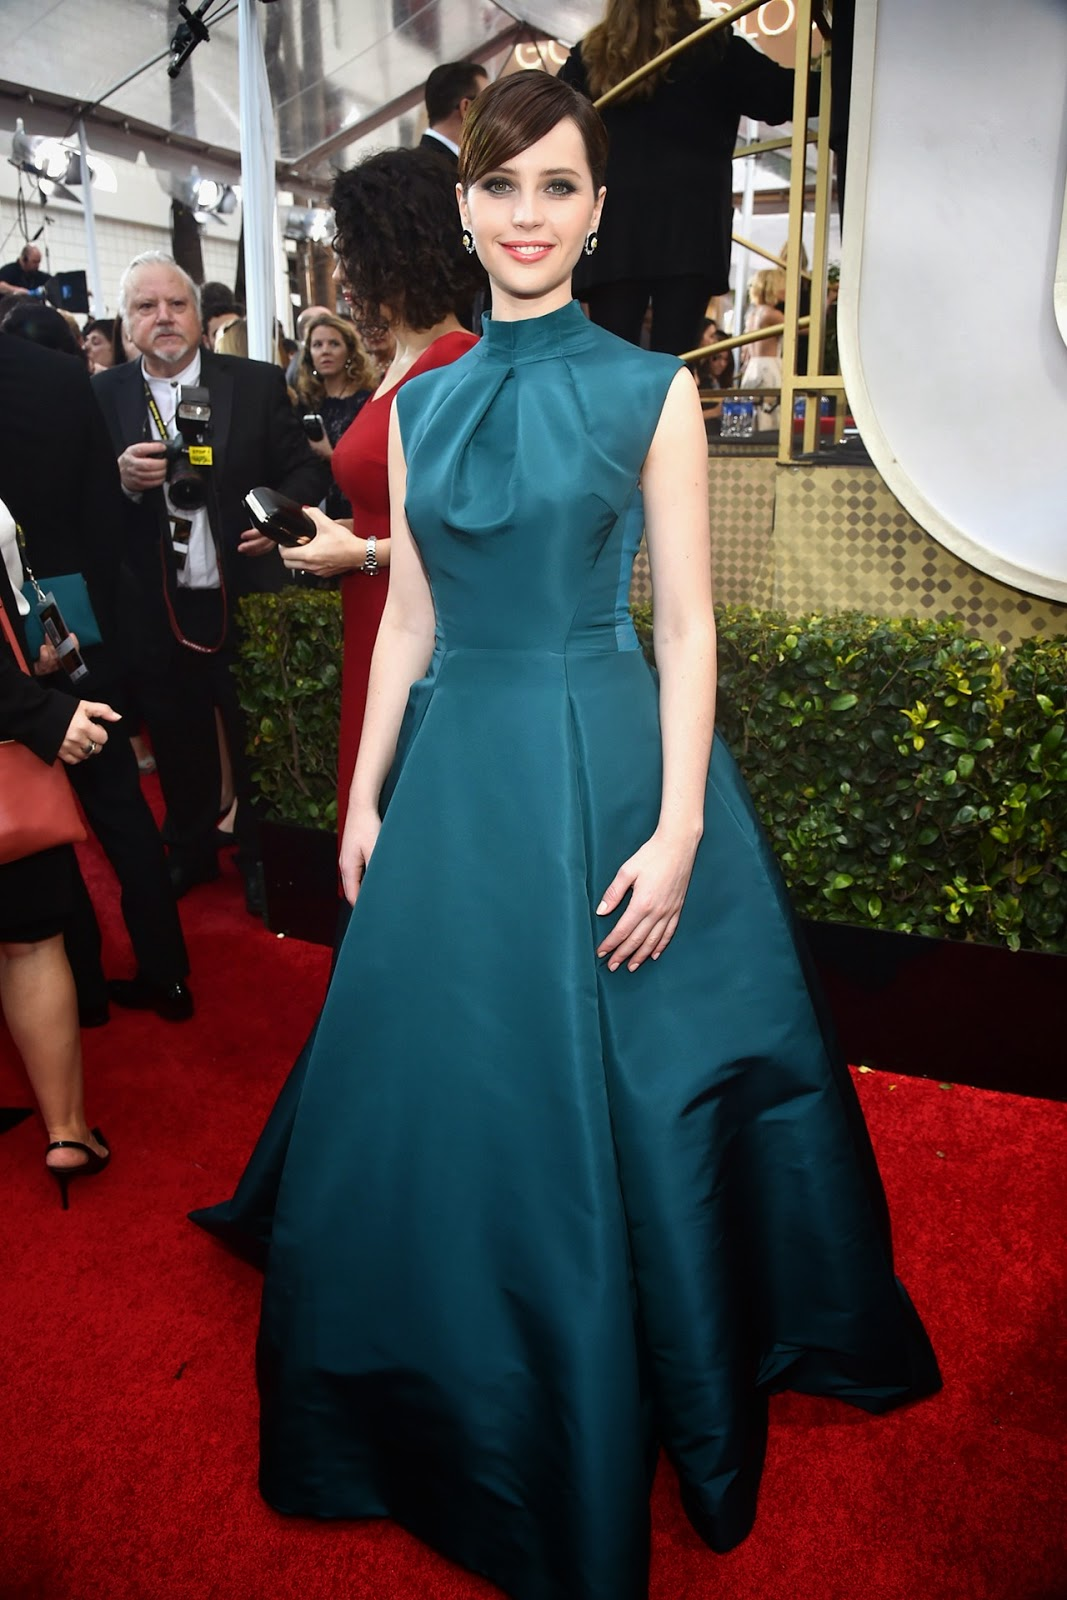 Felicity Jones in Dior at the Golden Globe Awards 2015